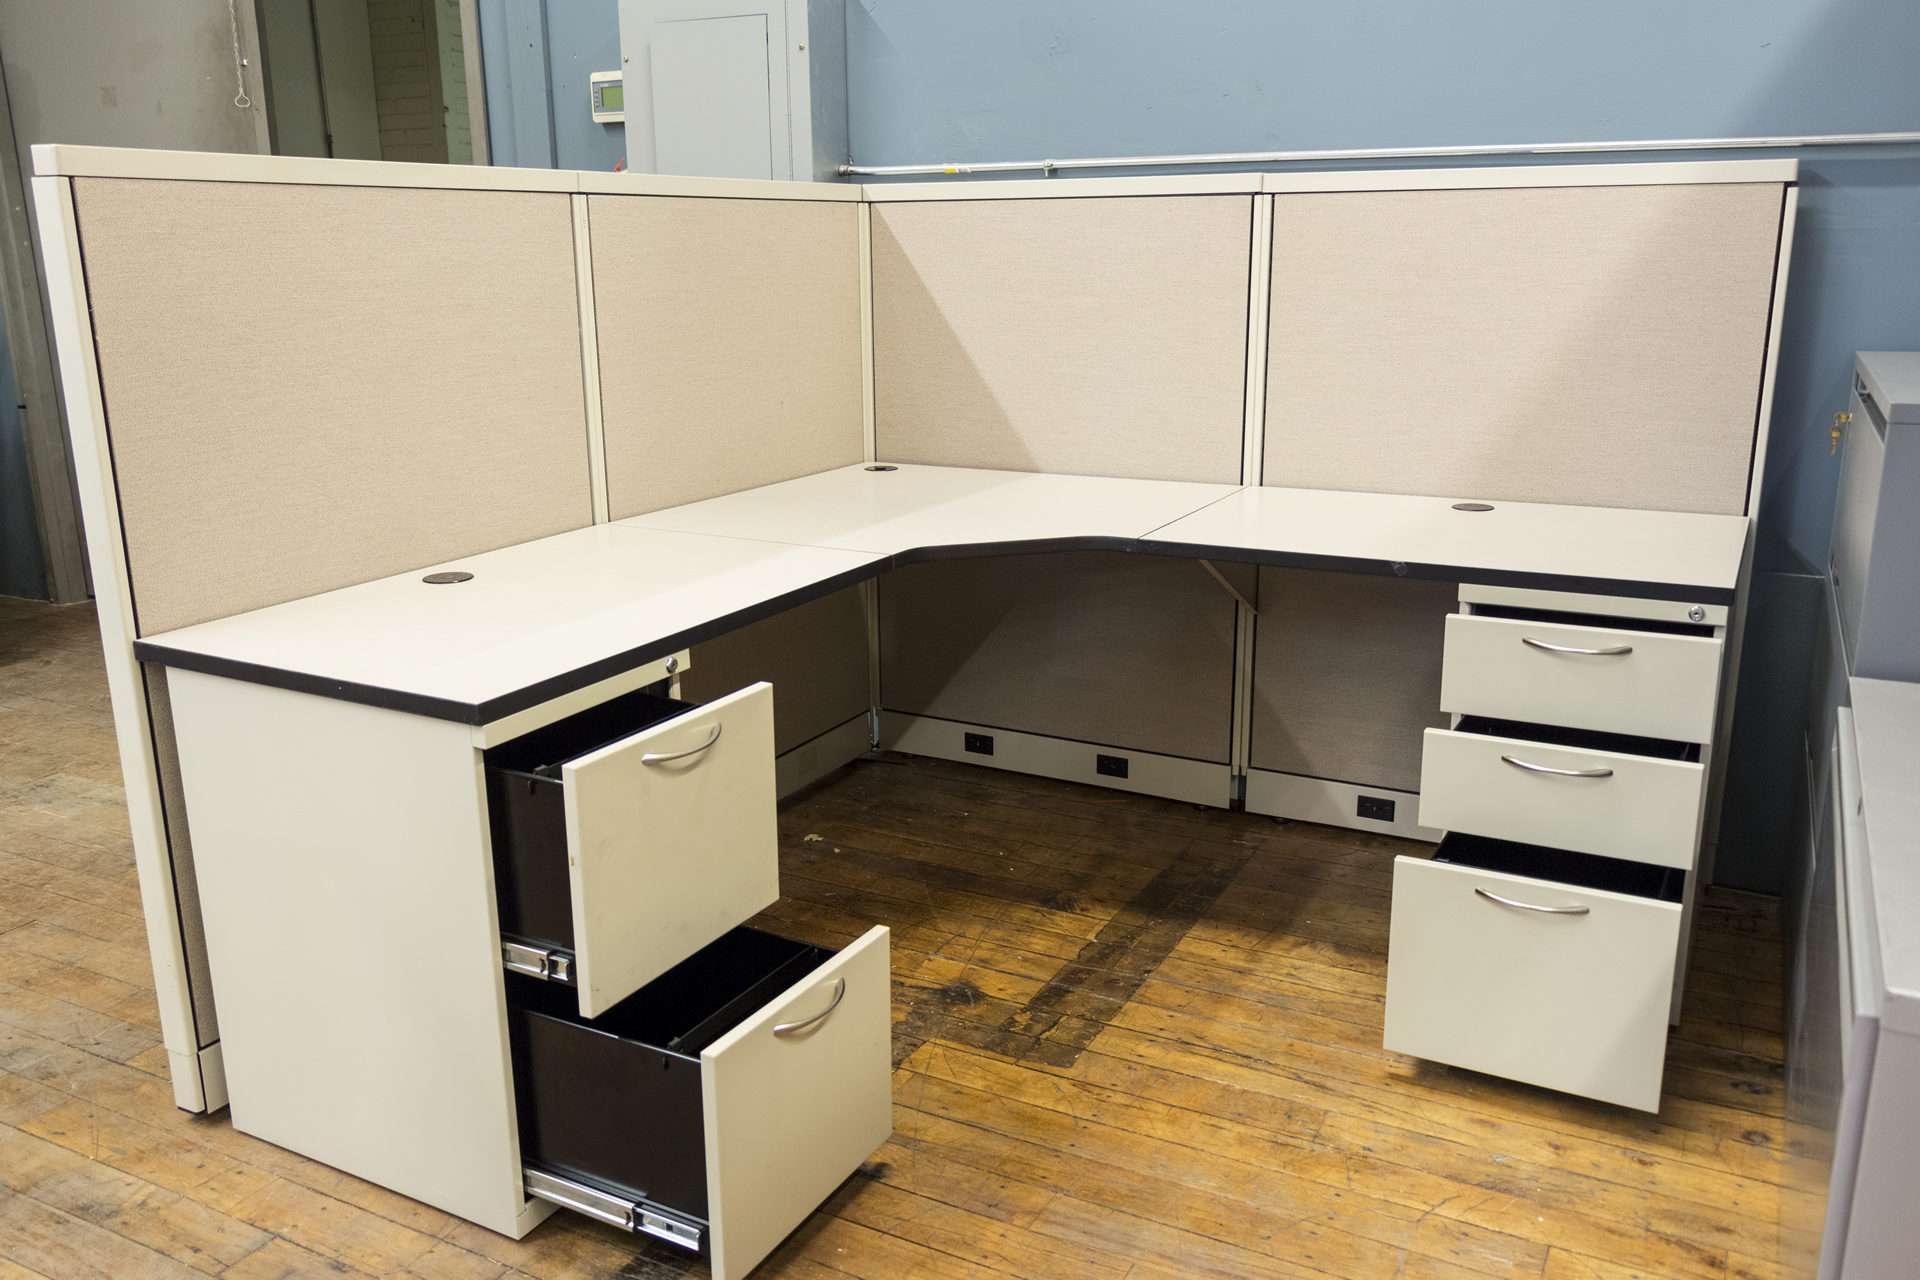 peartreeofficefurniture_peartreeofficefurniture_peartreeofficefurniture_img_9560.jpg